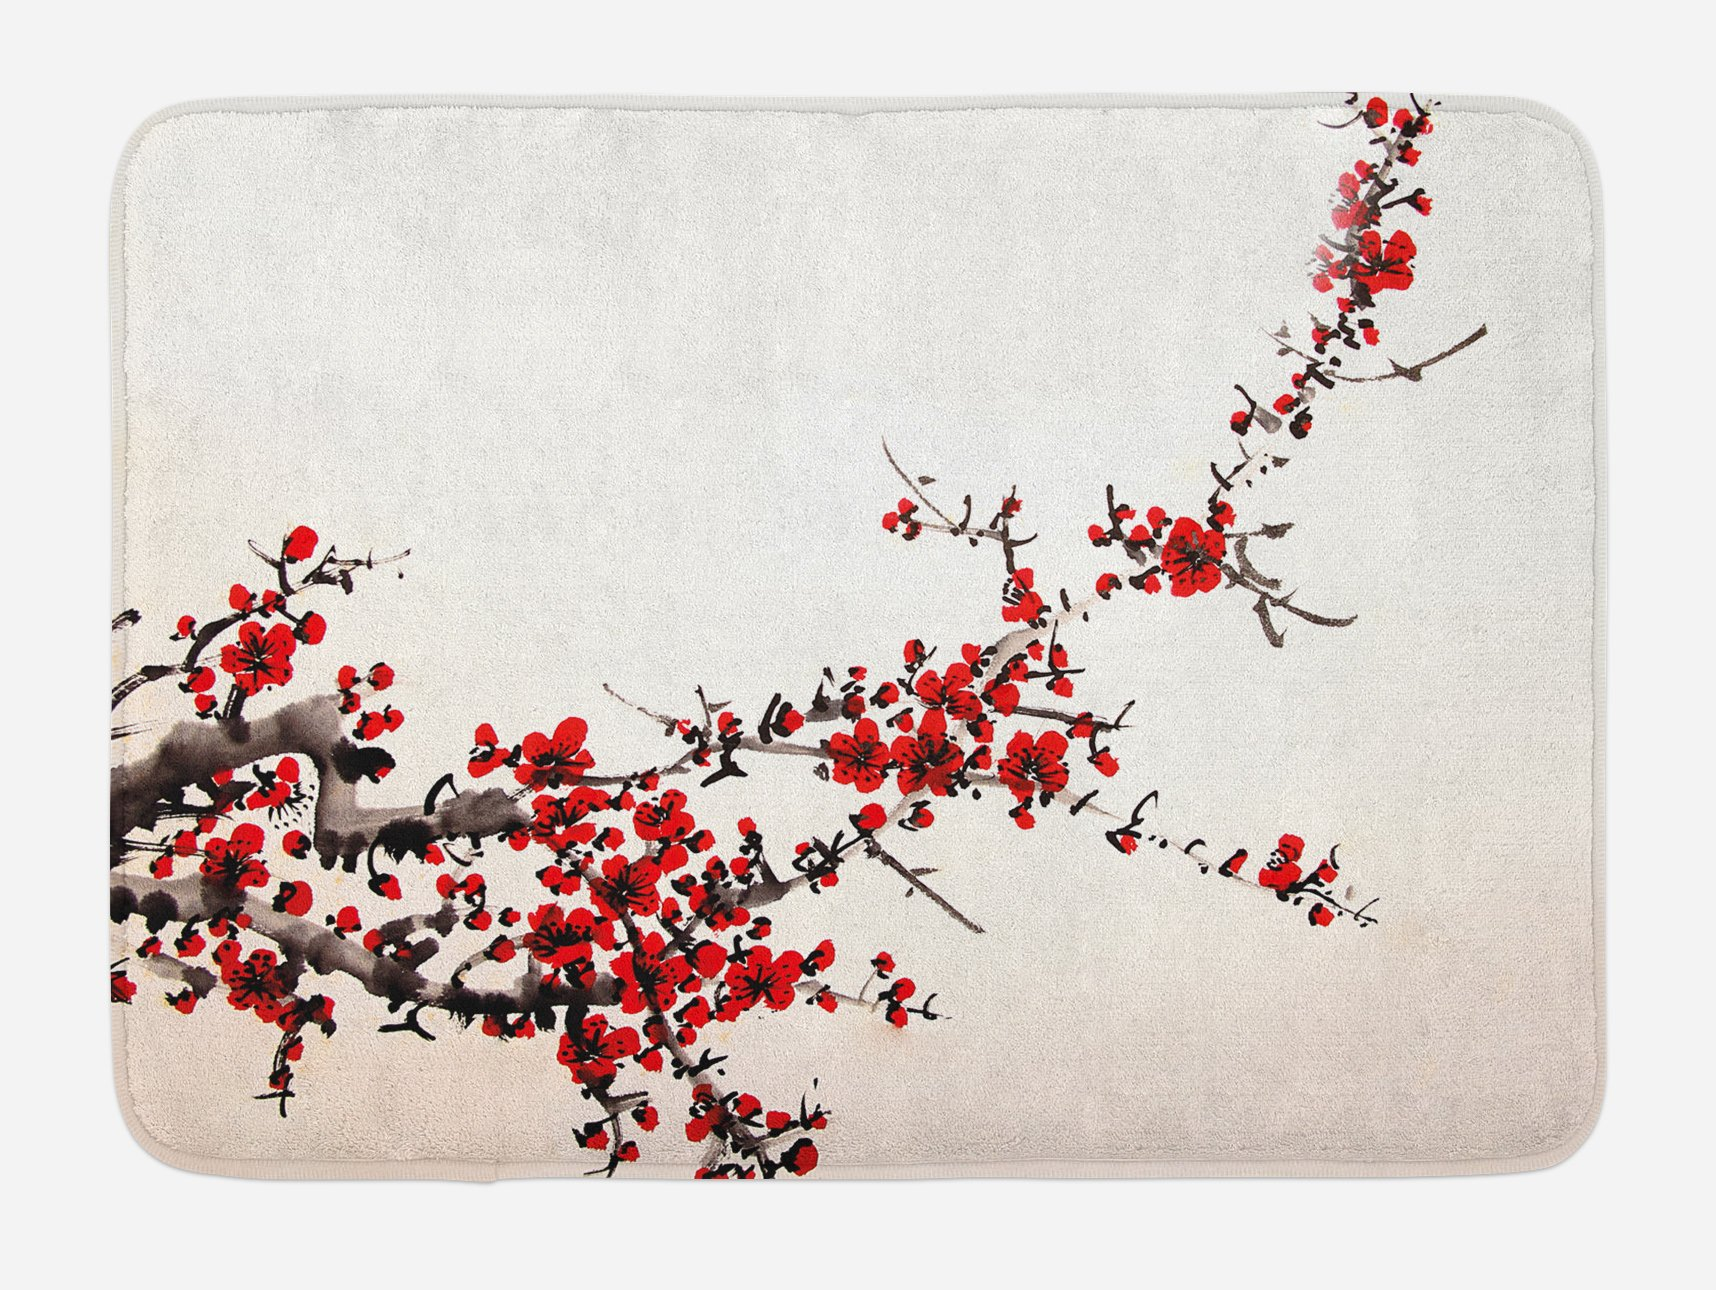 Ambesonne Art Bath Mat, Cherry Blossom Sakura Tree Branches Ink Paint Stylized Japanese Artful Pattern, Plush Bathroom Decor Mat with Non Slip Backing, 29.5 W X 17.5 W Inches, Red Cream